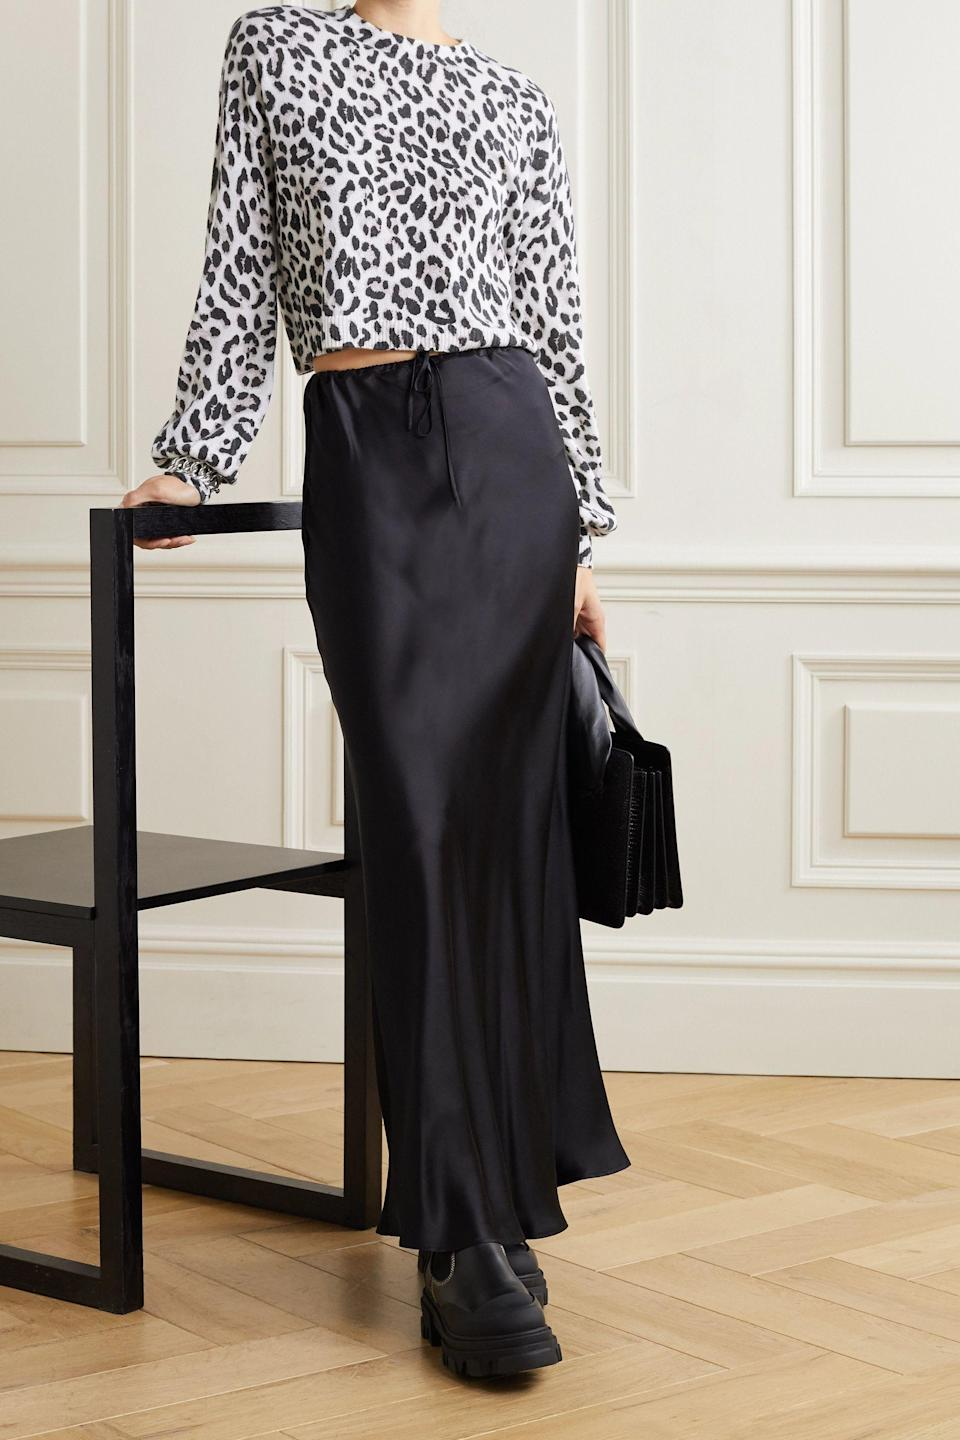 """<p><strong>ALICE + OLIVIA</strong></p><p>net-a-porter.com</p><p><strong>$210.00</strong></p><p><a href=""""https://go.redirectingat.com?id=74968X1596630&url=https%3A%2F%2Fwww.net-a-porter.com%2Fen-us%2Fshop%2Fproduct%2Falice-plus-olivia%2Fclothing%2Fmedium-knit%2Fansley-leopard-jacquard-cashmere-sweater%2F23471478575890426&sref=https%3A%2F%2Fwww.cosmopolitan.com%2Fstyle-beauty%2Ffashion%2Fg36618322%2Fnet-a-porter-spring-sale-2021%2F"""" rel=""""nofollow noopener"""" target=""""_blank"""" data-ylk=""""slk:Shop Now"""" class=""""link rapid-noclick-resp"""">Shop Now</a></p><p>You know how people say that a little black dress is a must in a woman's wardrobe? Well, I say so is an animal-printed sweater of some sort. And TBH, it should be this one.</p>"""